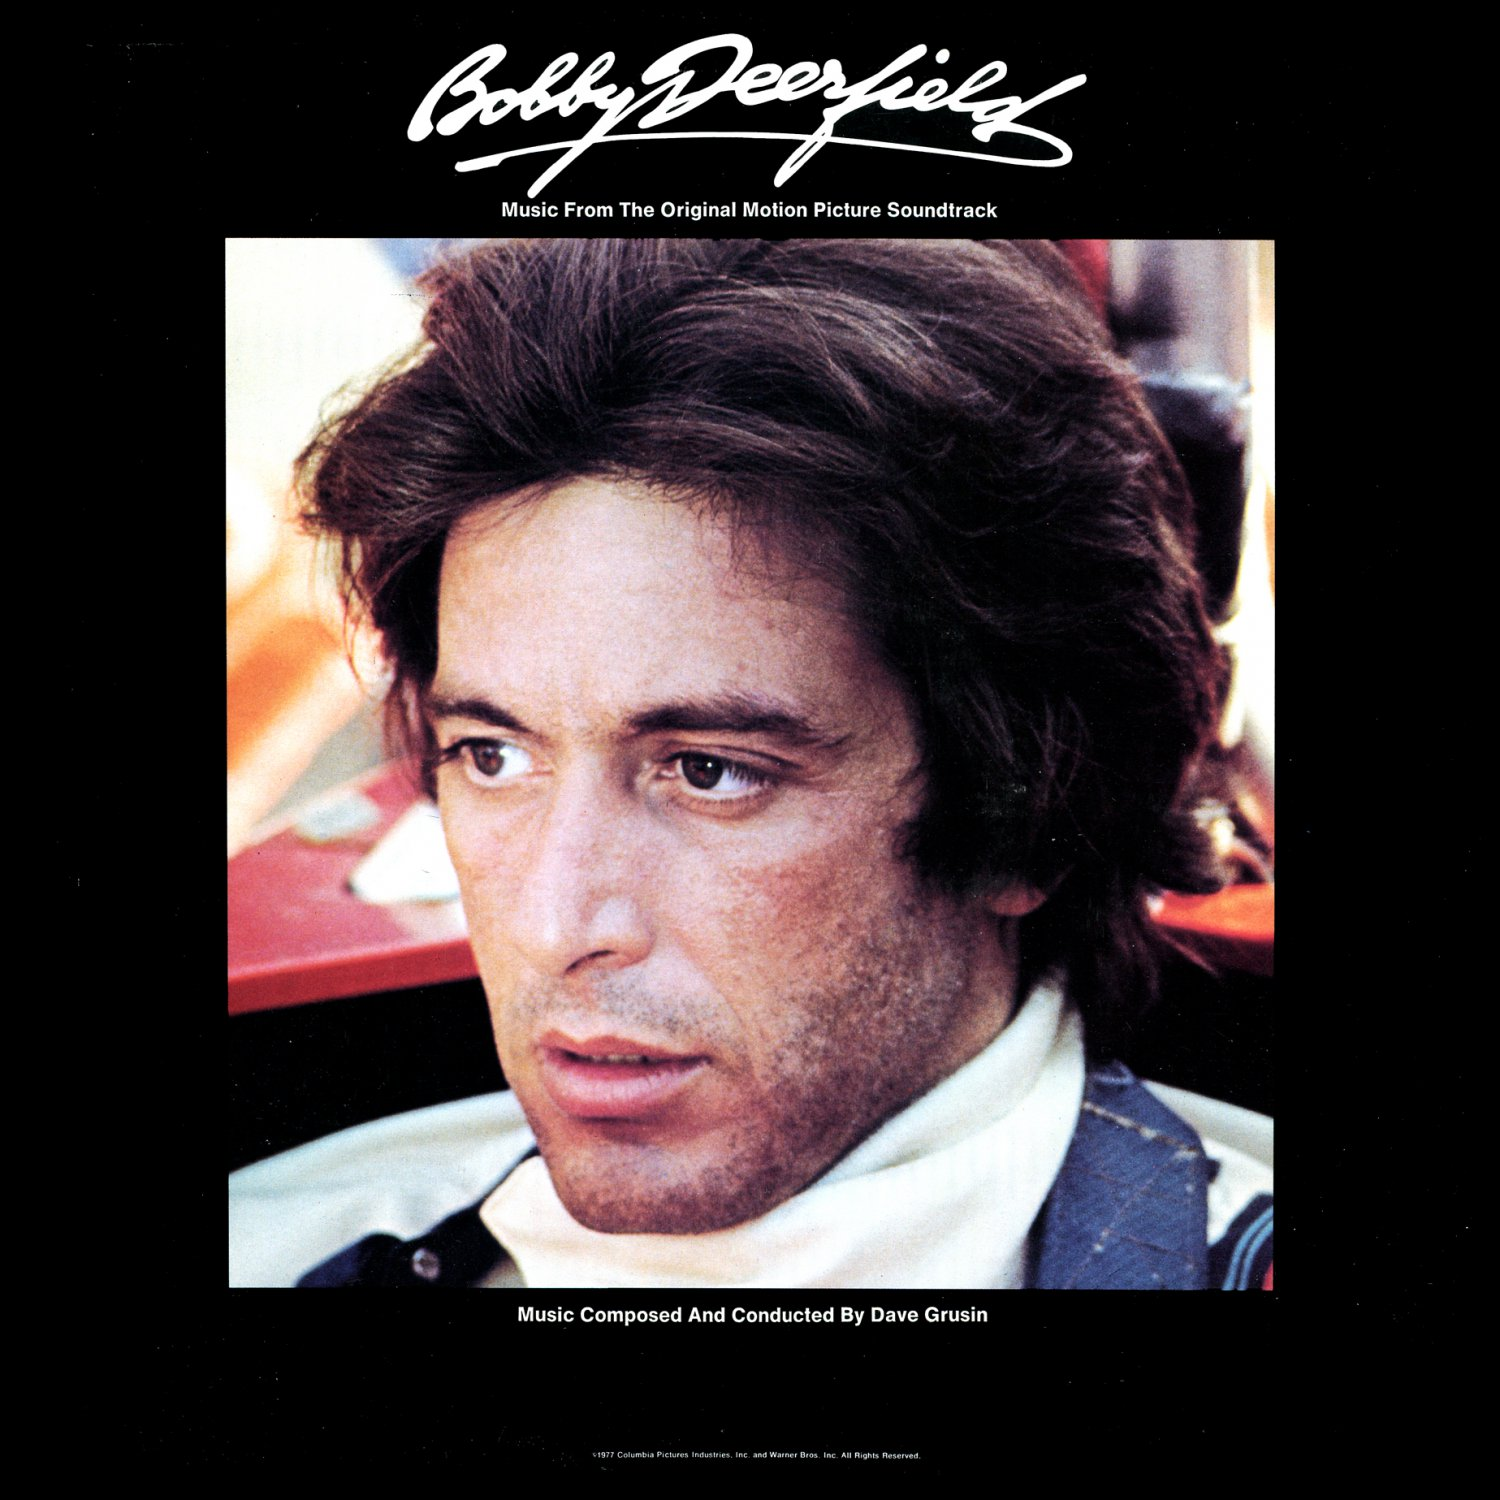 Bobby Deerfield - Original Soundtrack, Dave Grusin OST LP/CD